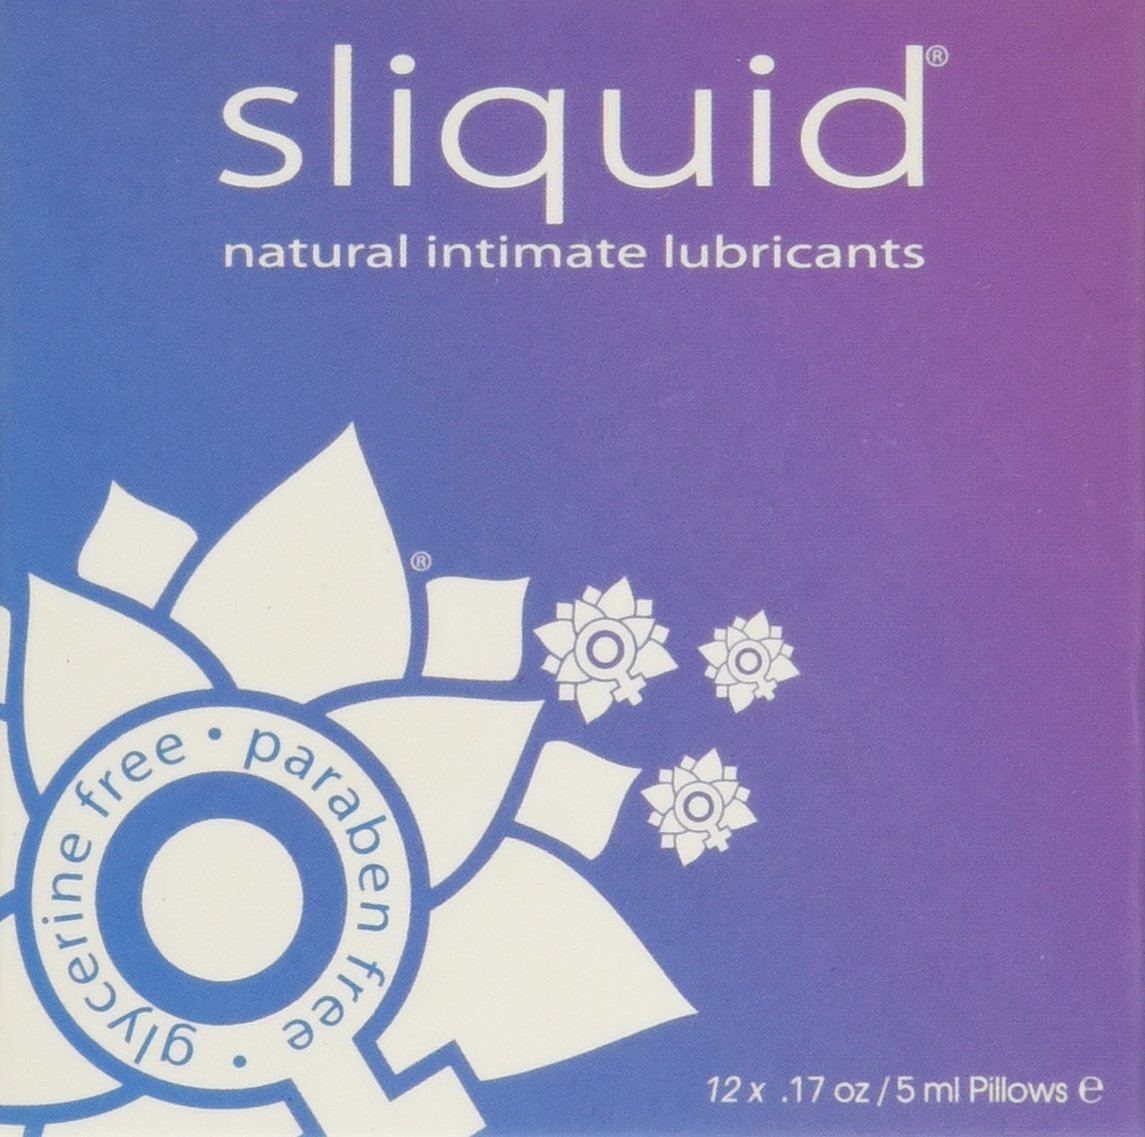 Naturals Lube Sampler, Free of dea, gluten and glycerine By Sliquid Ship from US